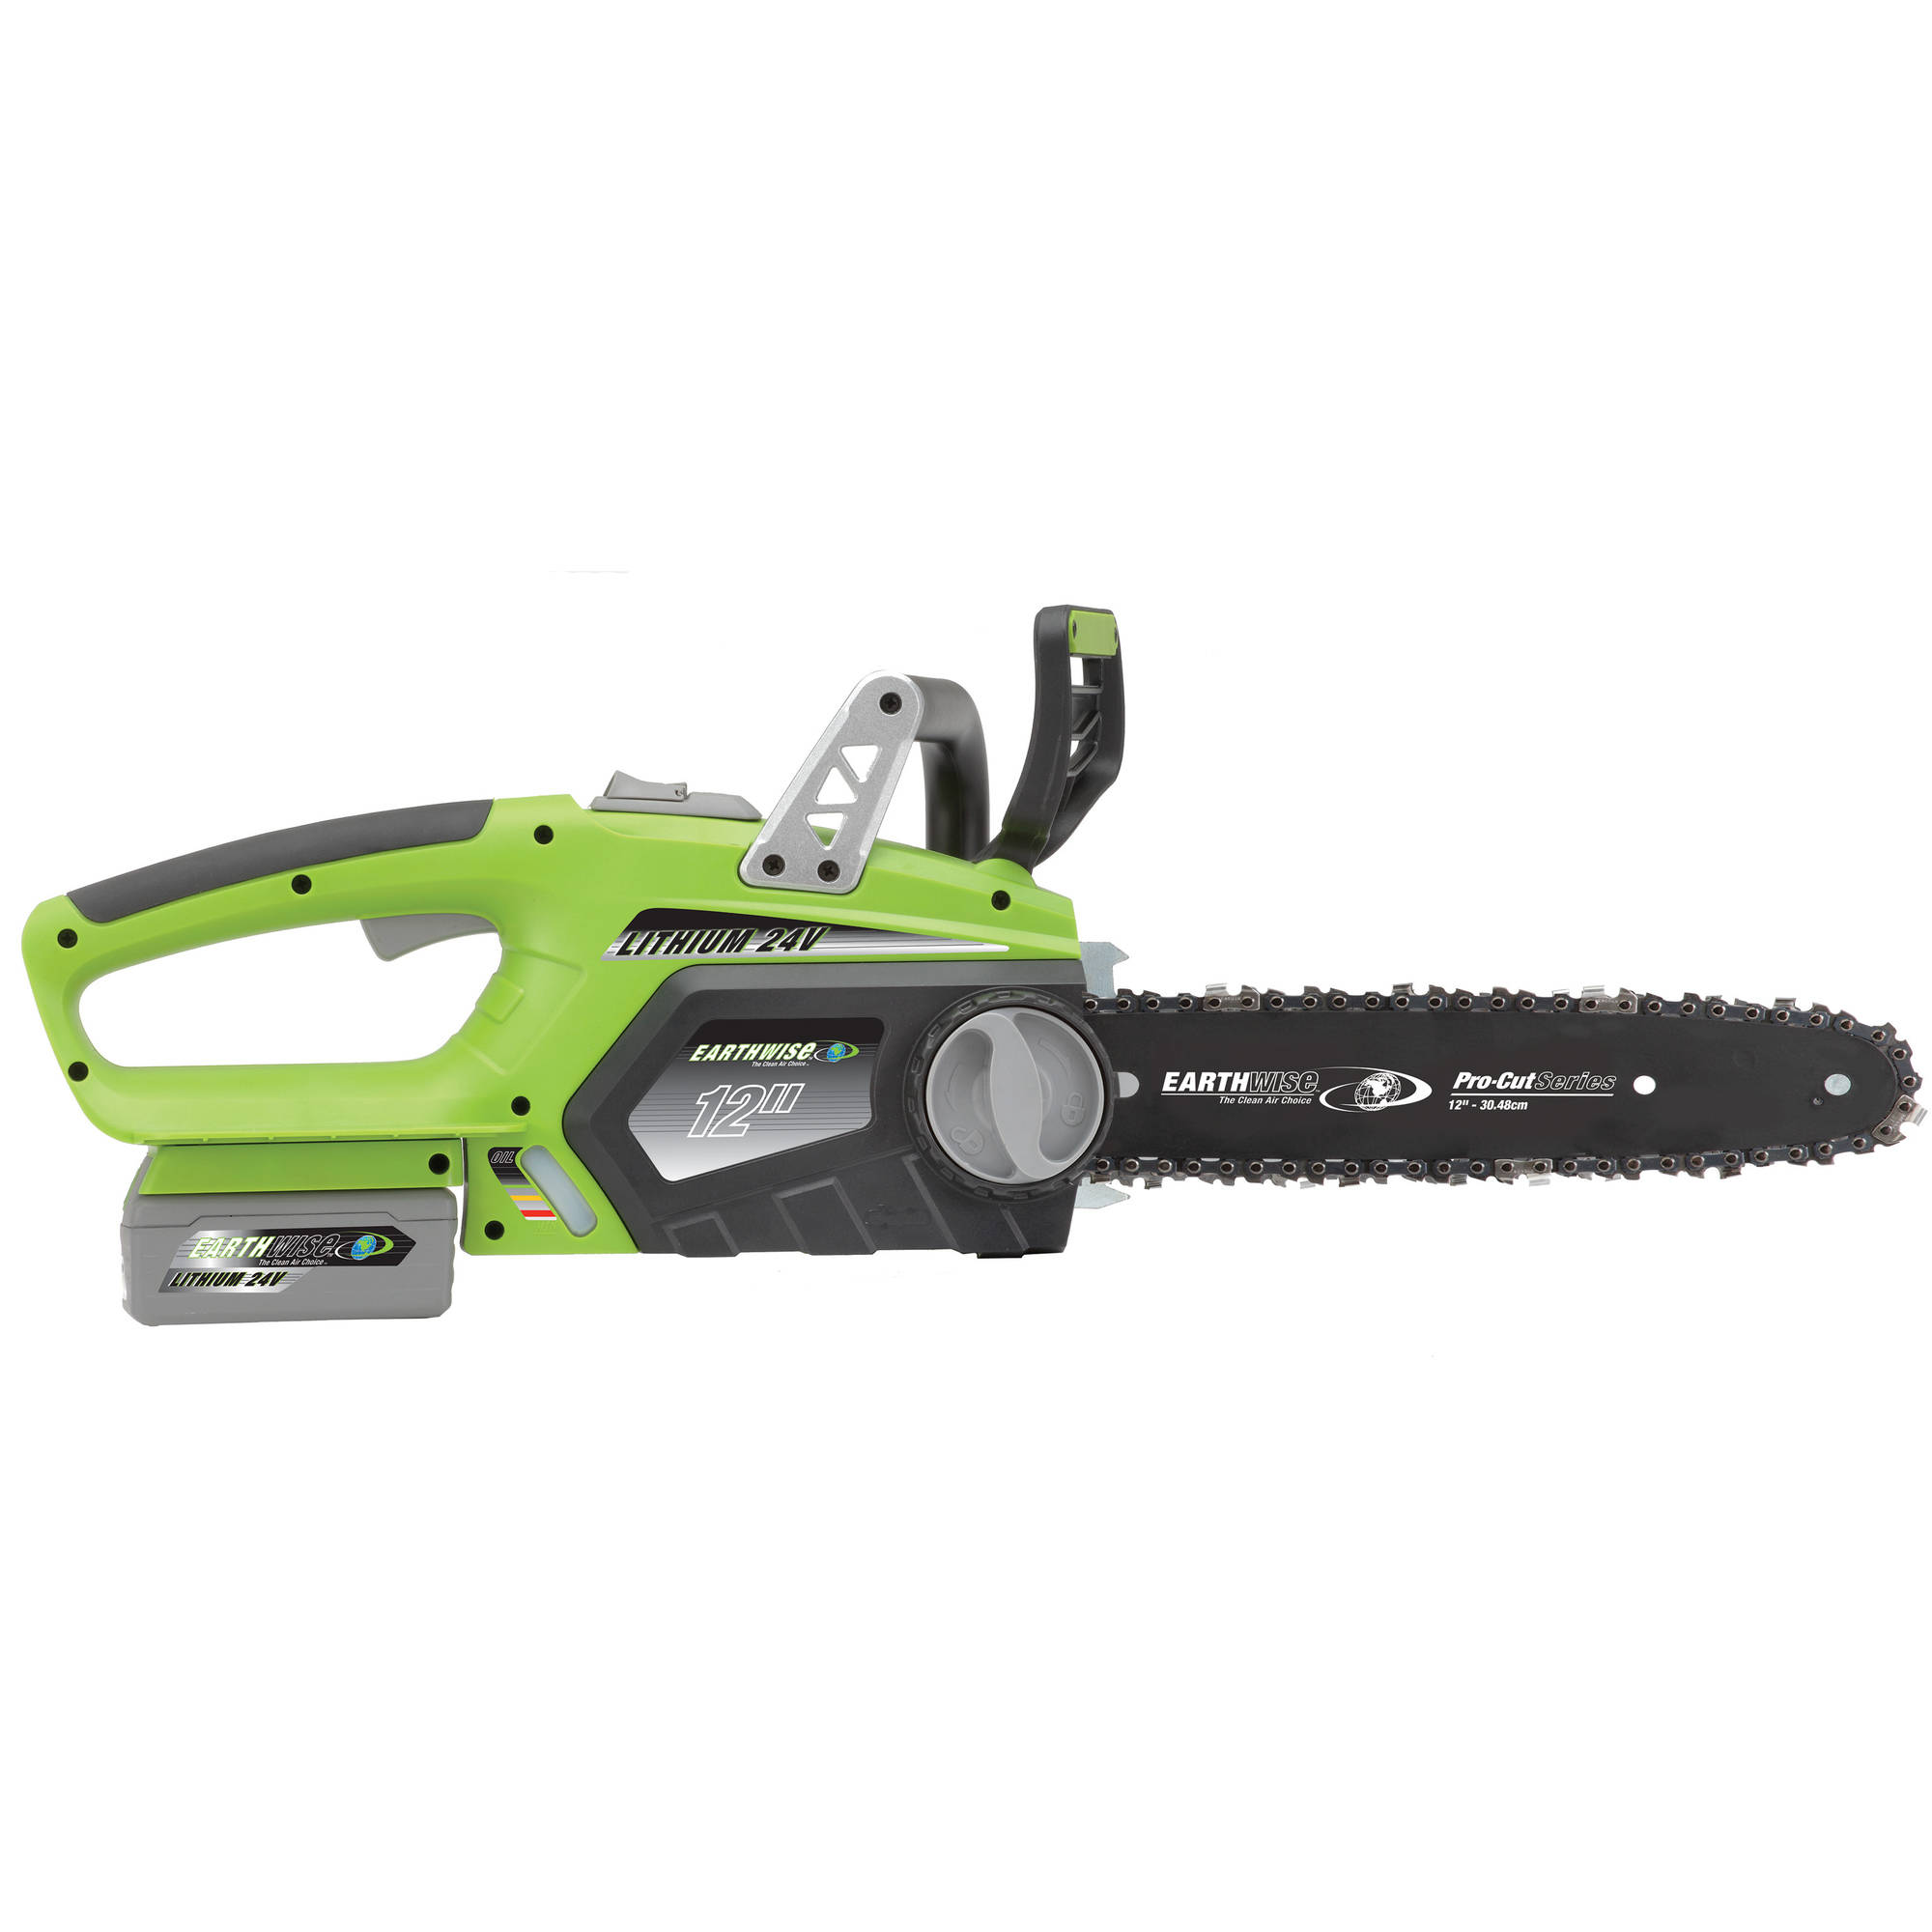 "Earthwise LCS32412 12"" 24-Volt Lithium Ion Cordless Electric Chain Saw (Battery and charger Included) by Great States Corporation"